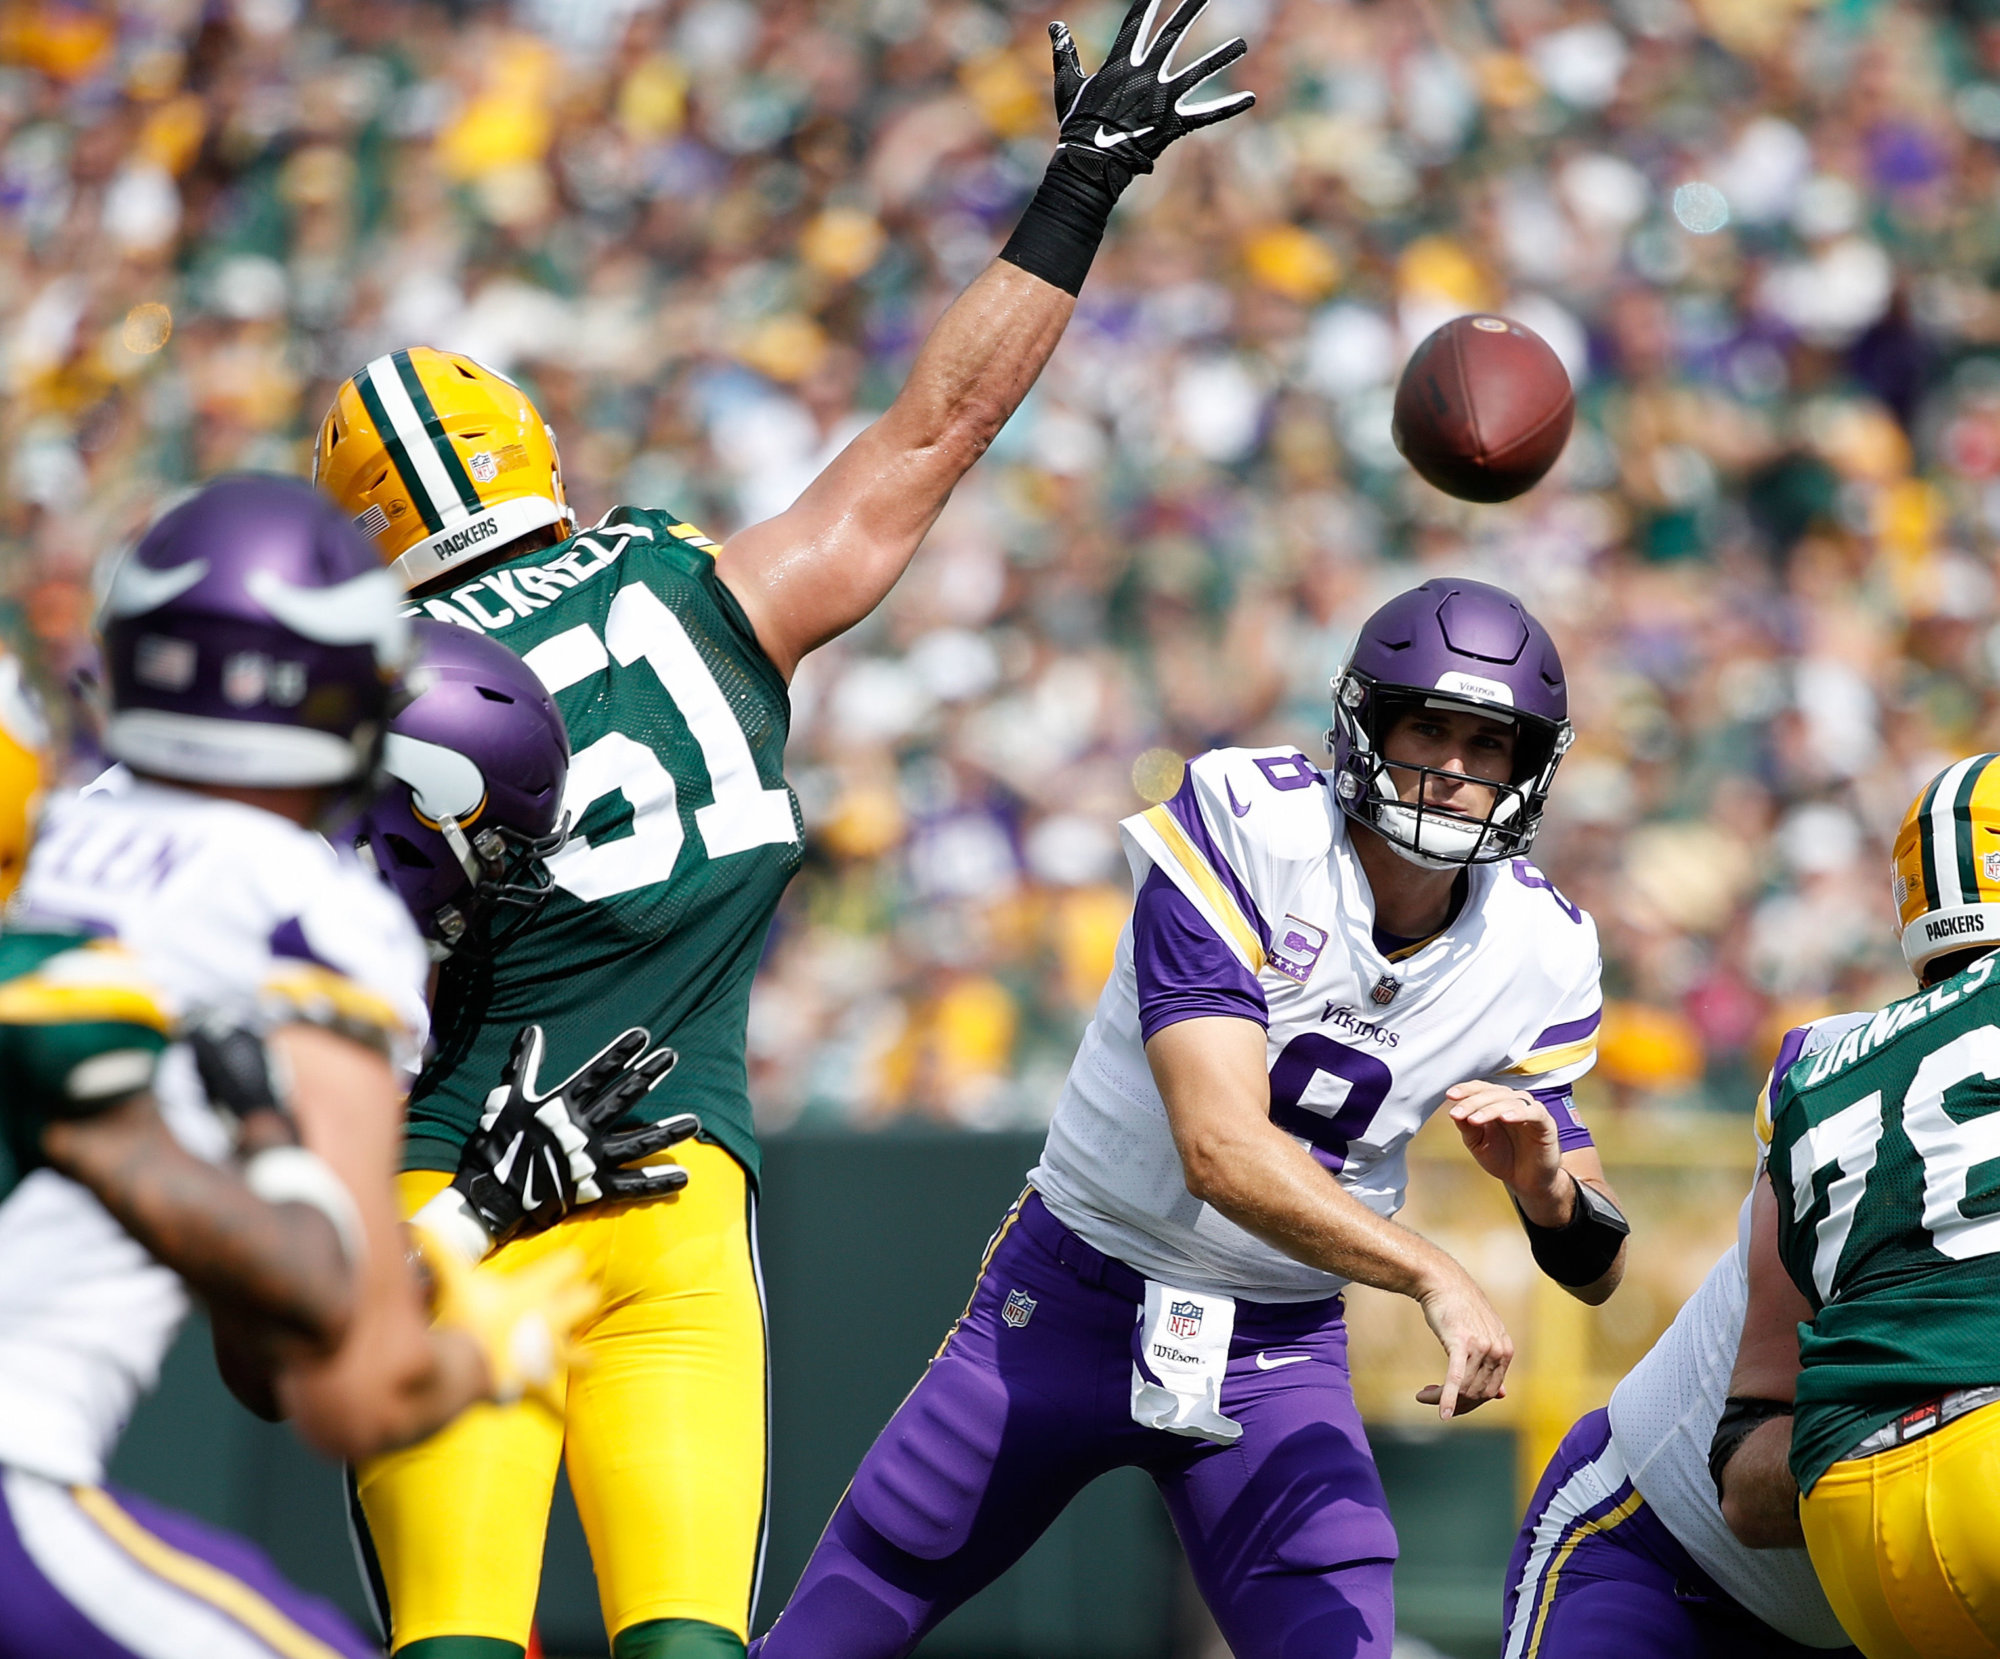 GREEN BAY, WI - SEPTEMBER 16:  Kirk Cousins #8 of the Minnesota Vikings throws a pass during the first quarter of a game against the Green Bay Packers at Lambeau Field on September 16, 2018 in Green Bay, Wisconsin.  (Photo by Joe Robbins/Getty Images)